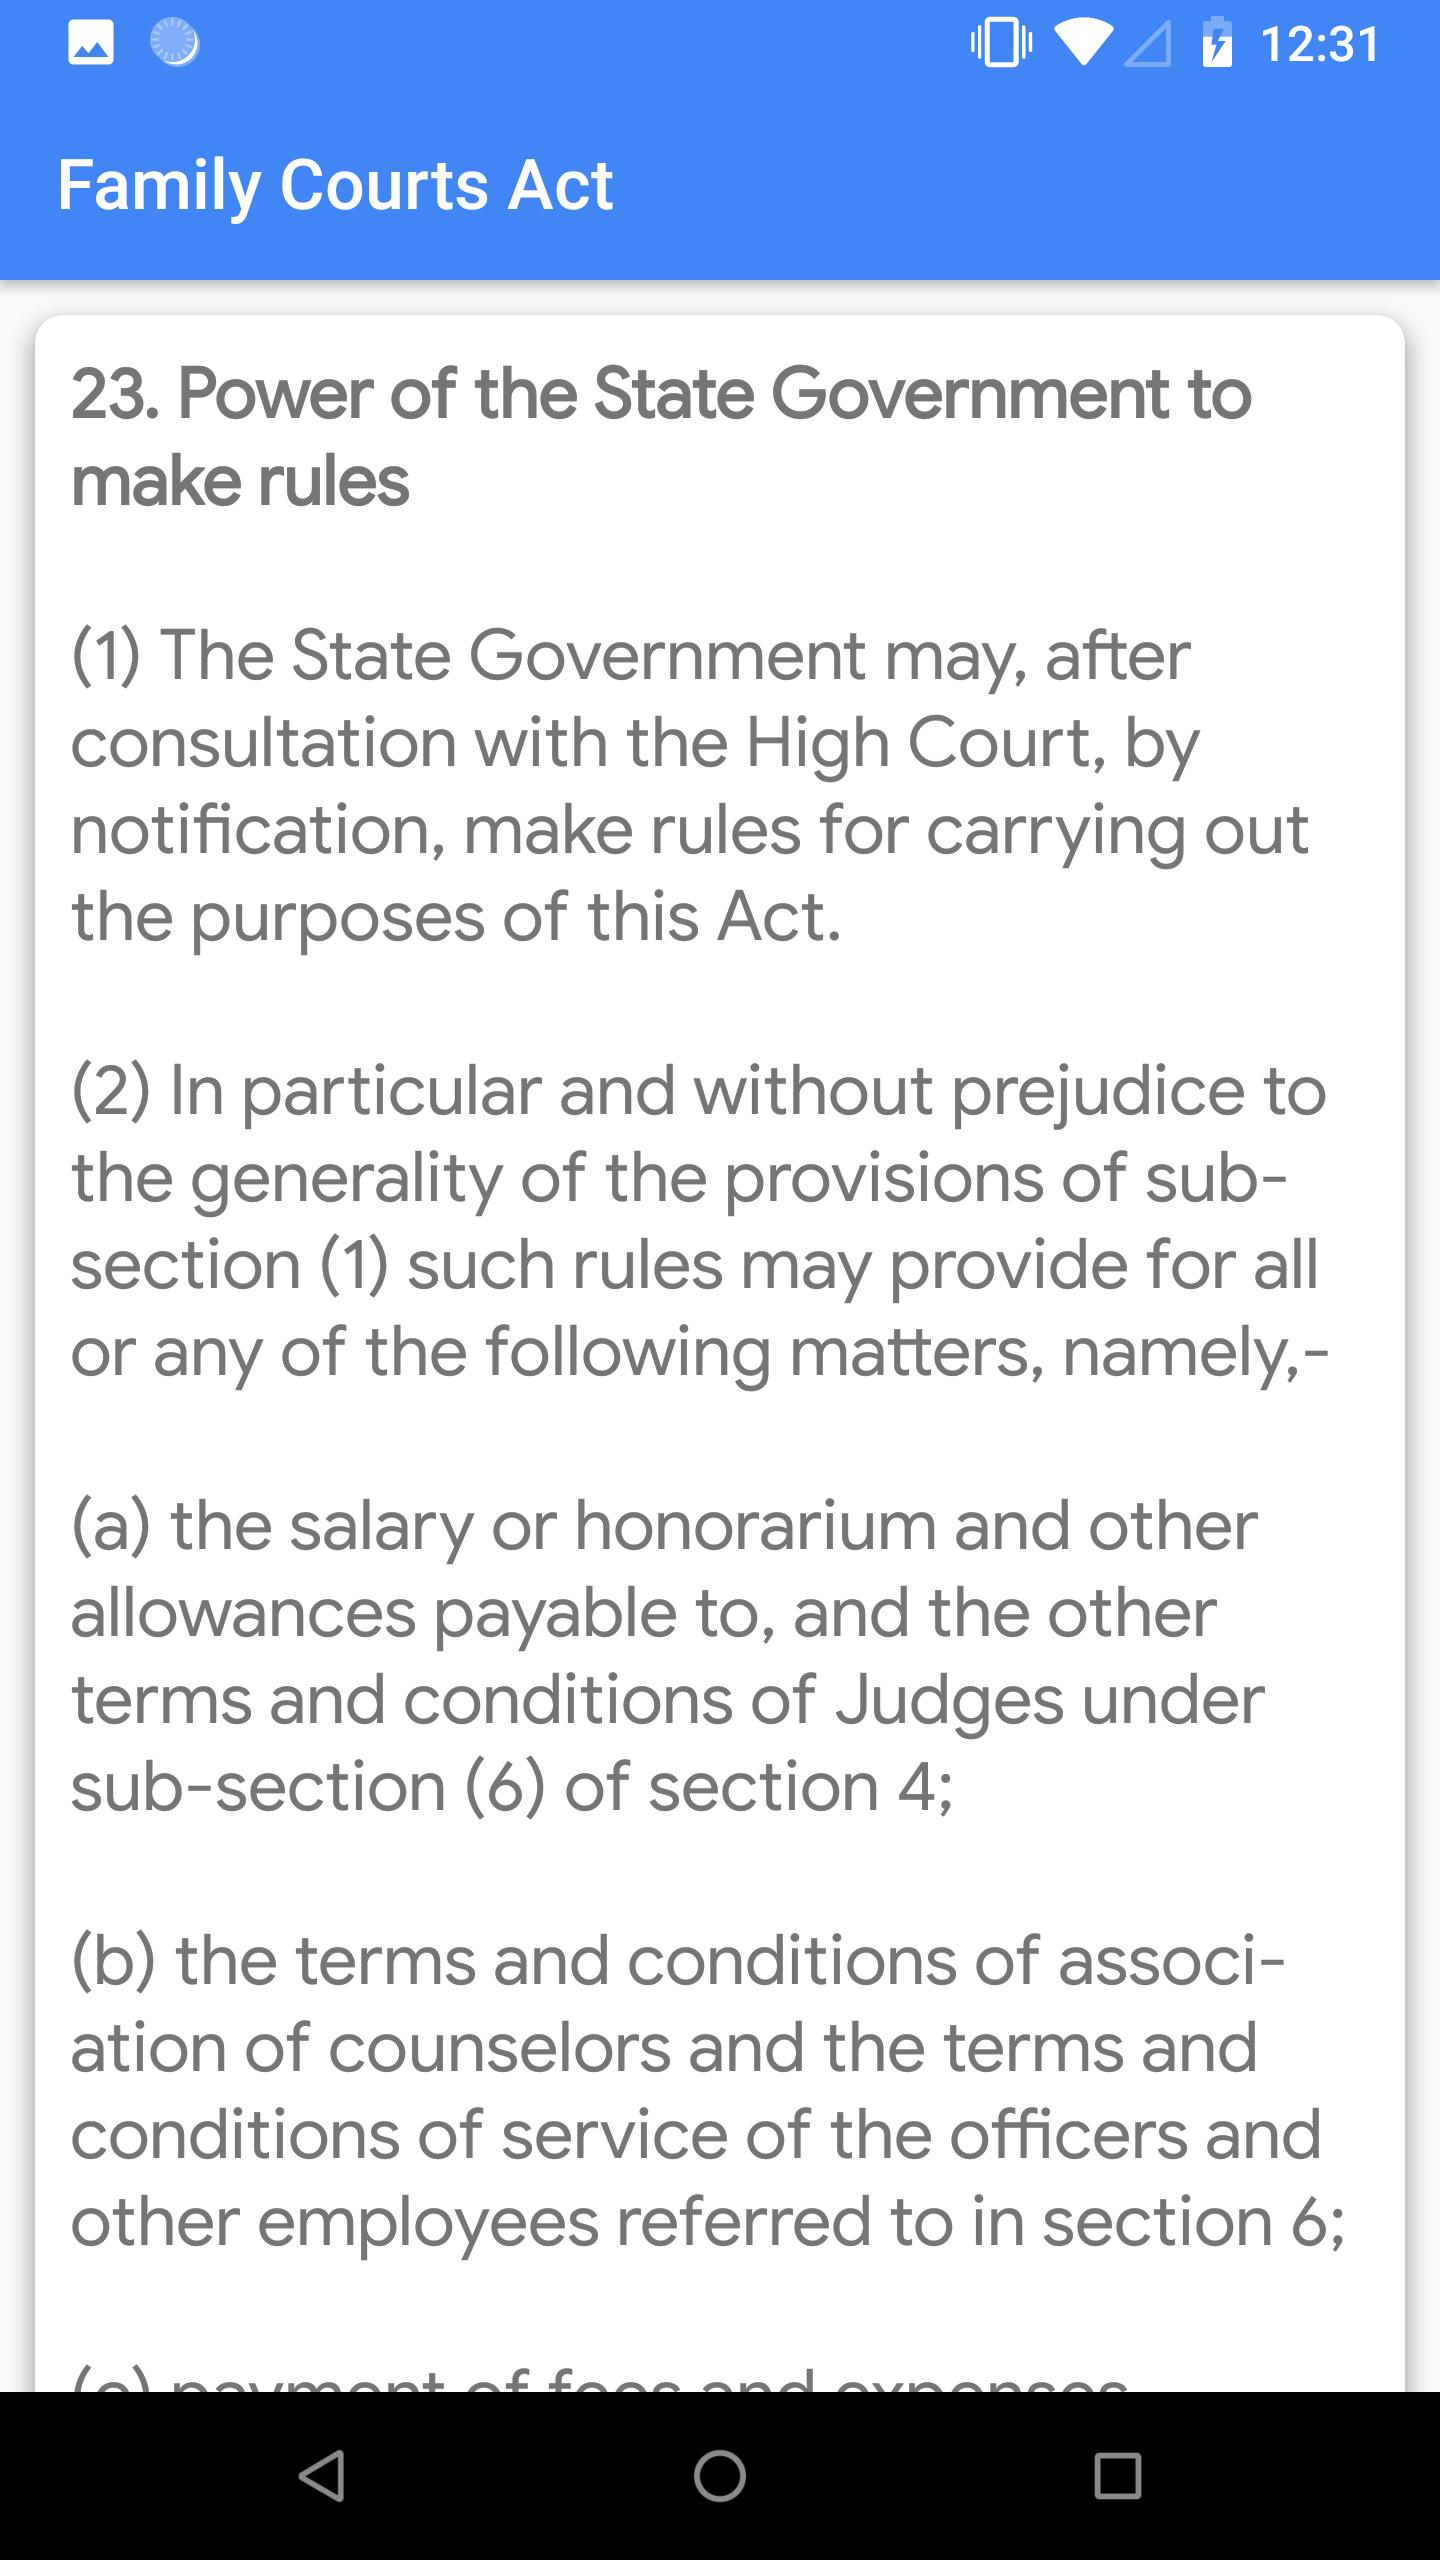 Family Courts Act for Android - APK Download